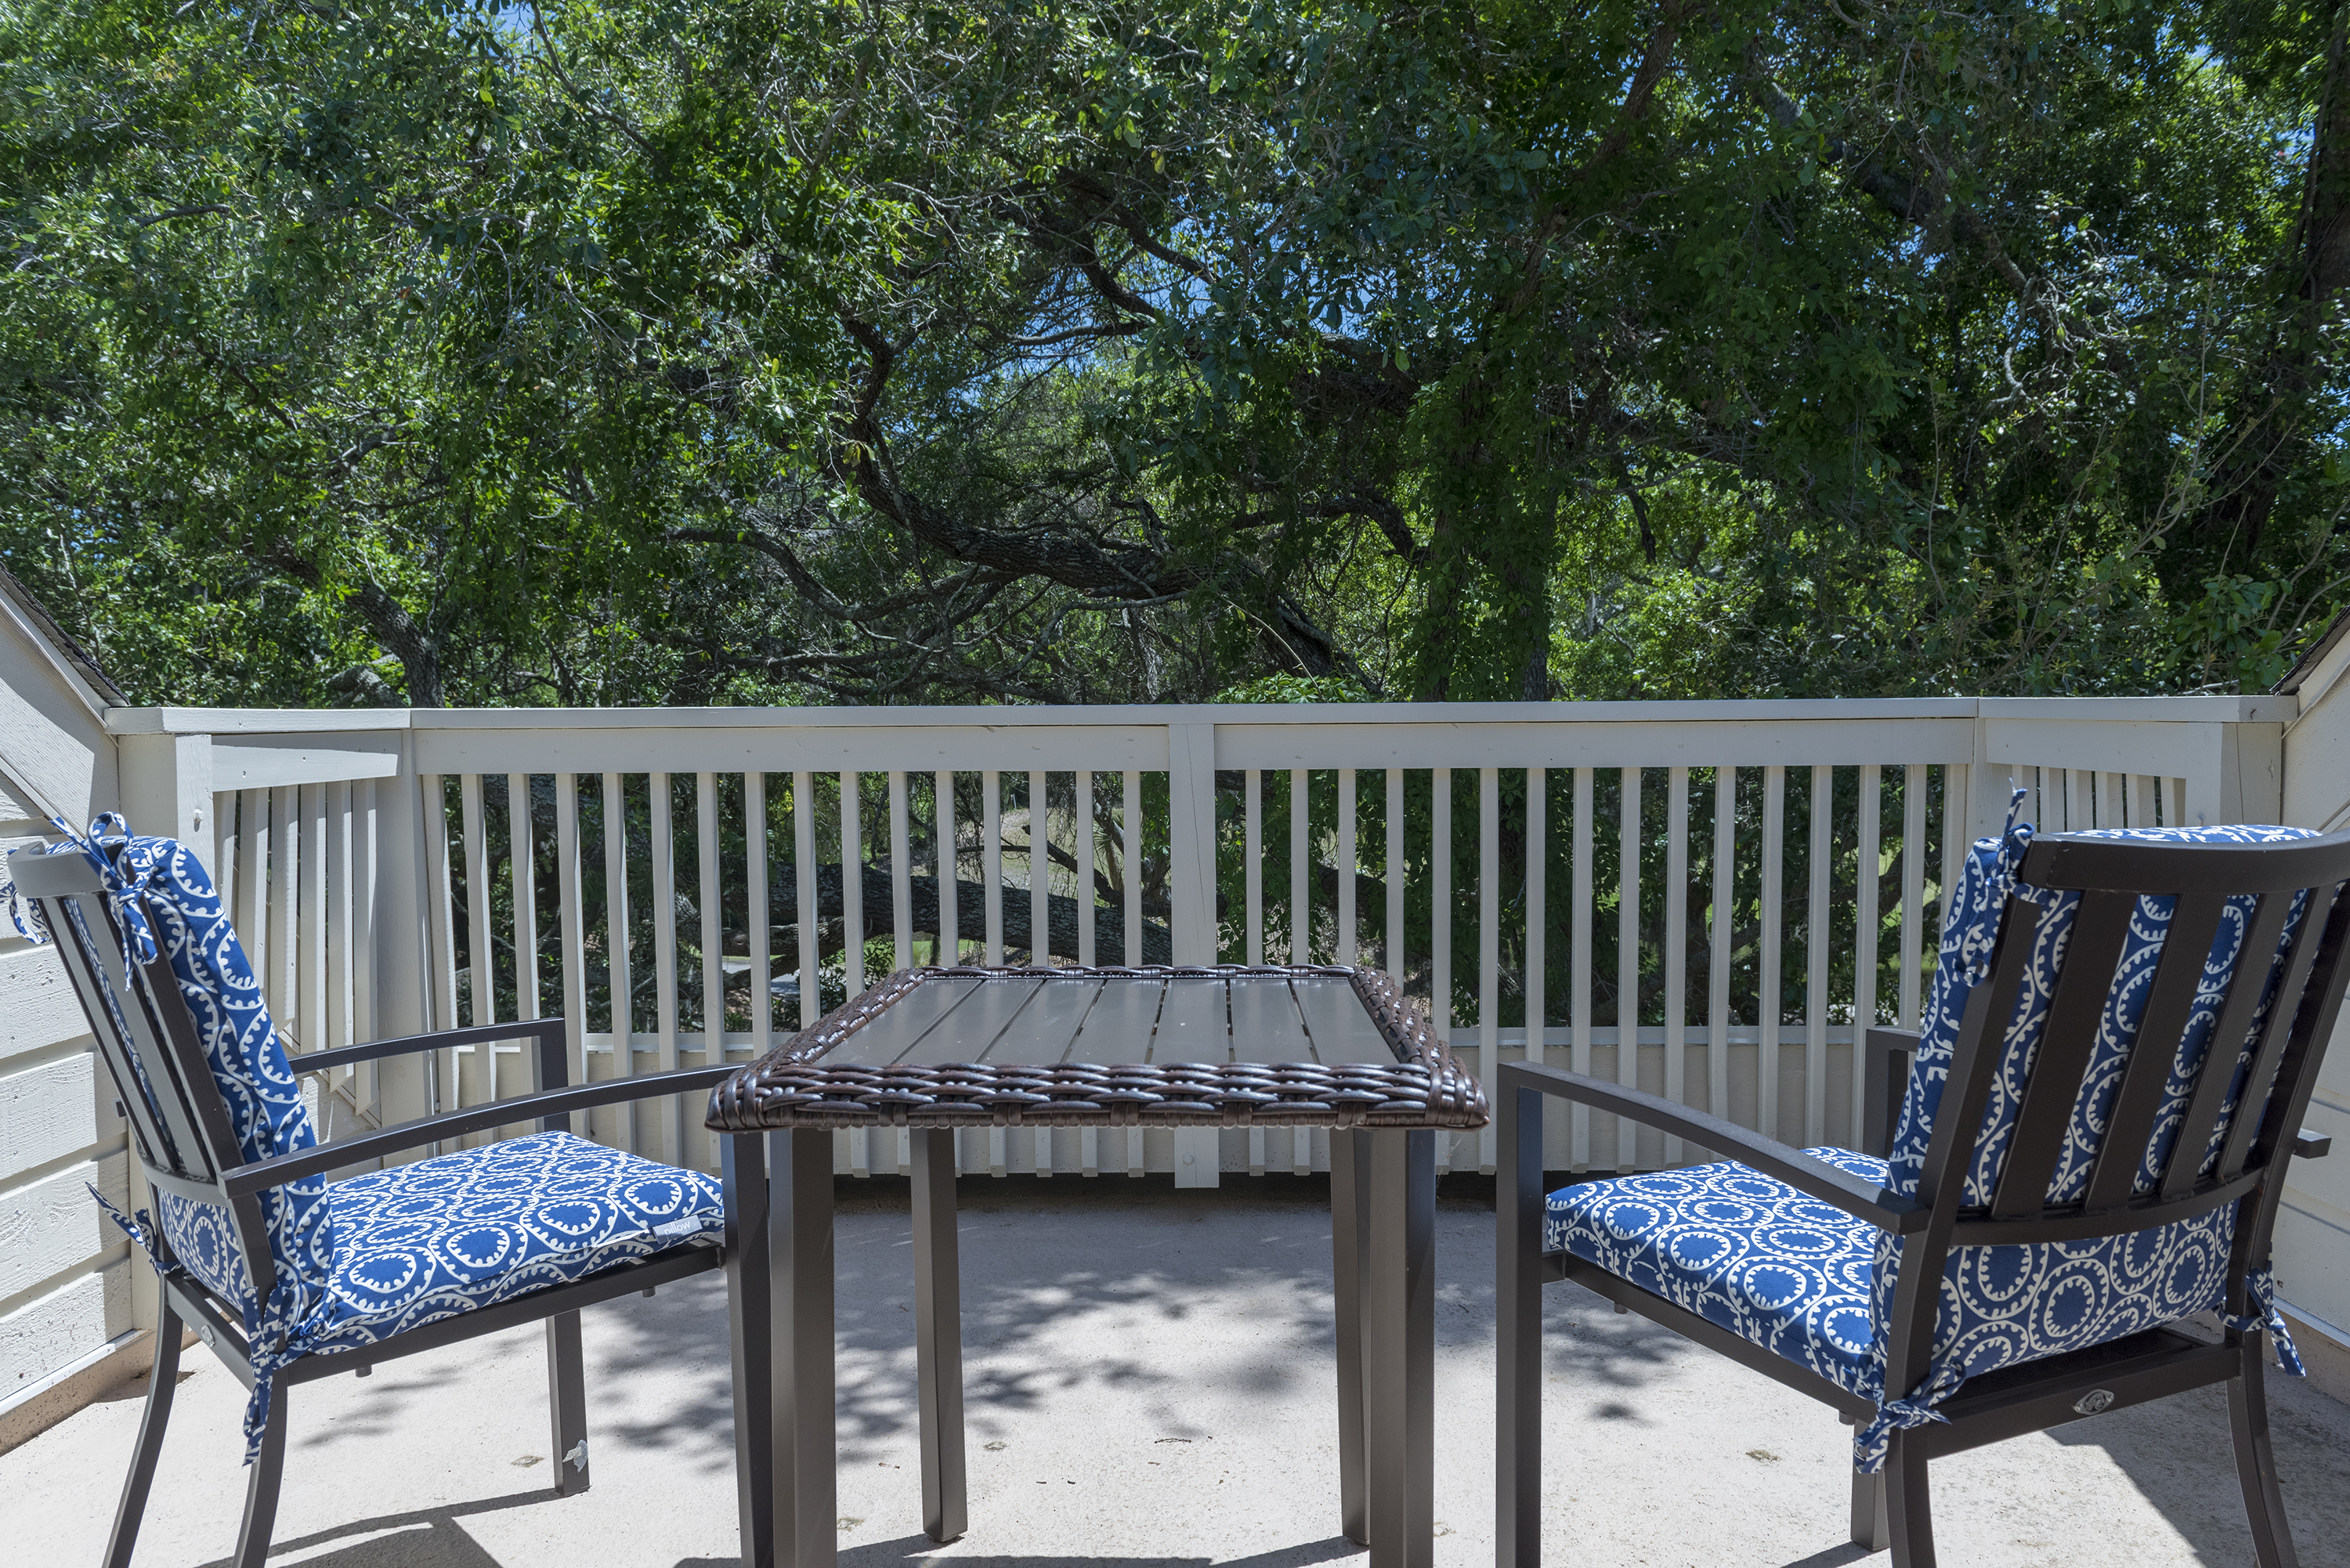 Deck 2 provides a shady spot to enjoy your morning coffee and catch sight of the golfers on Crooked Oak.